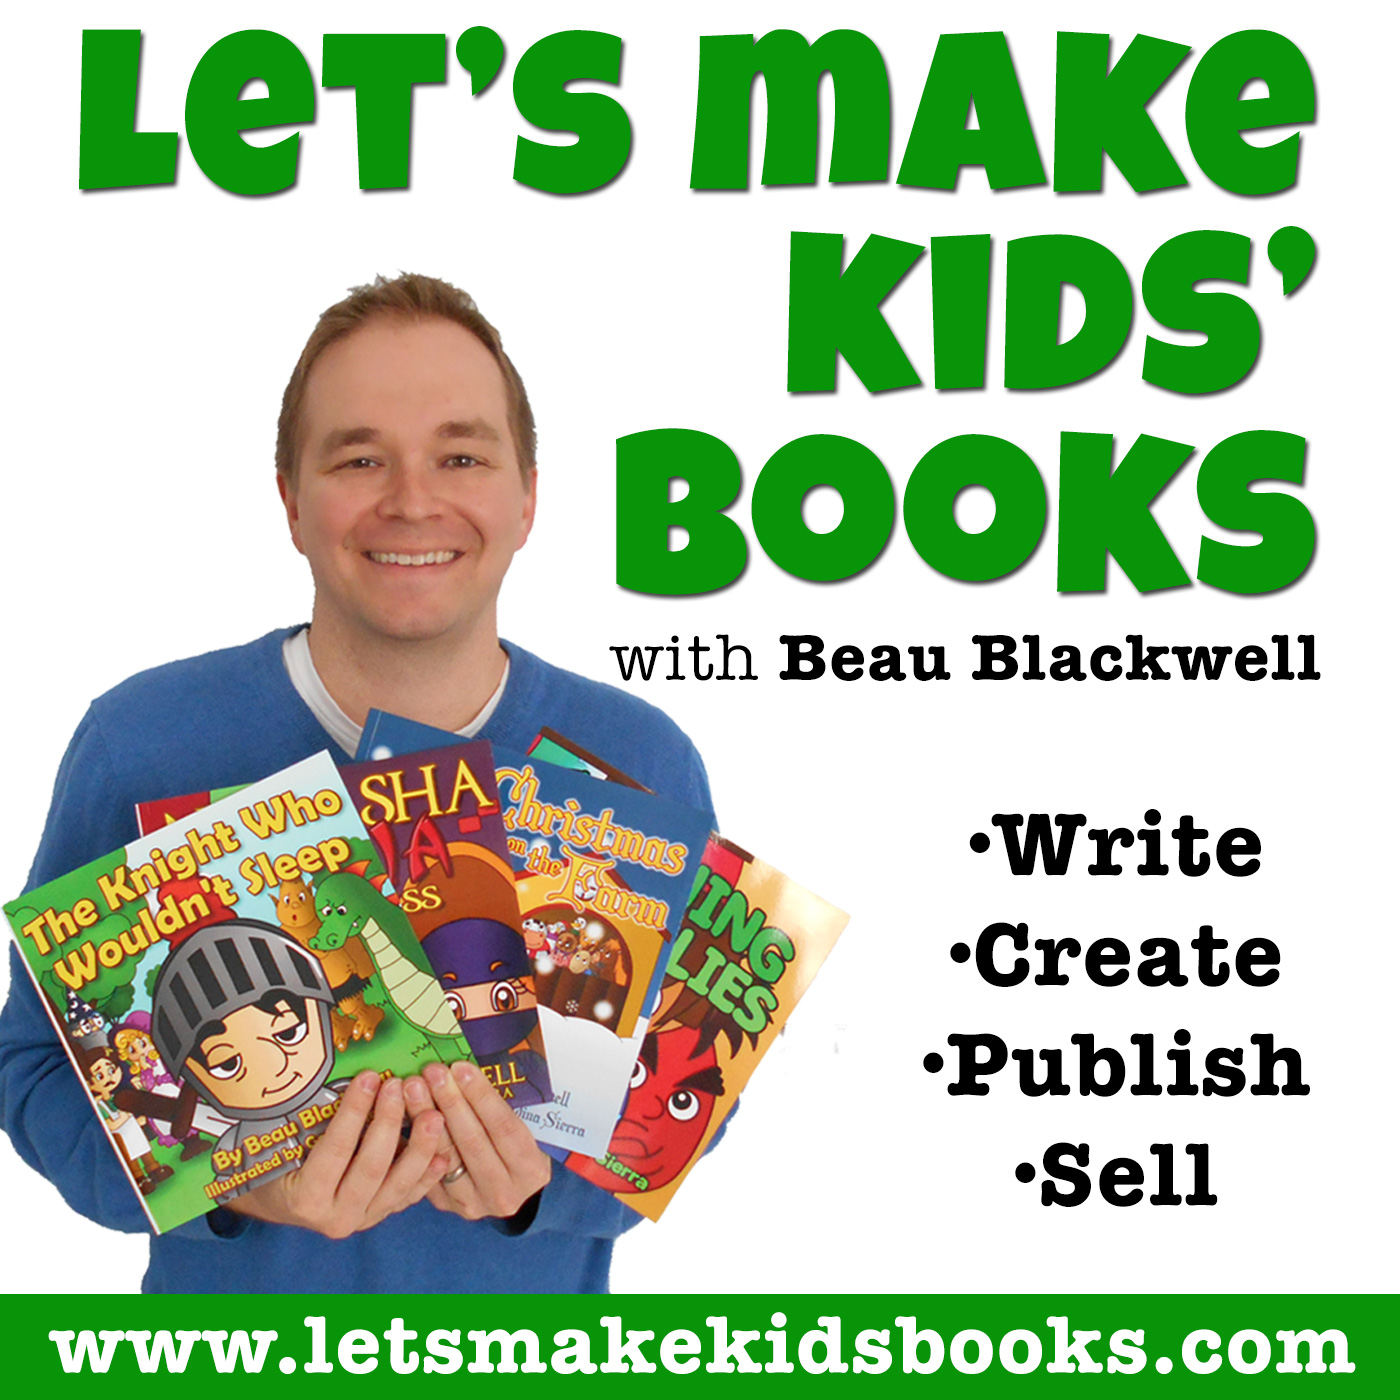 Introducing the Let's Make Kids' Books Podcast!